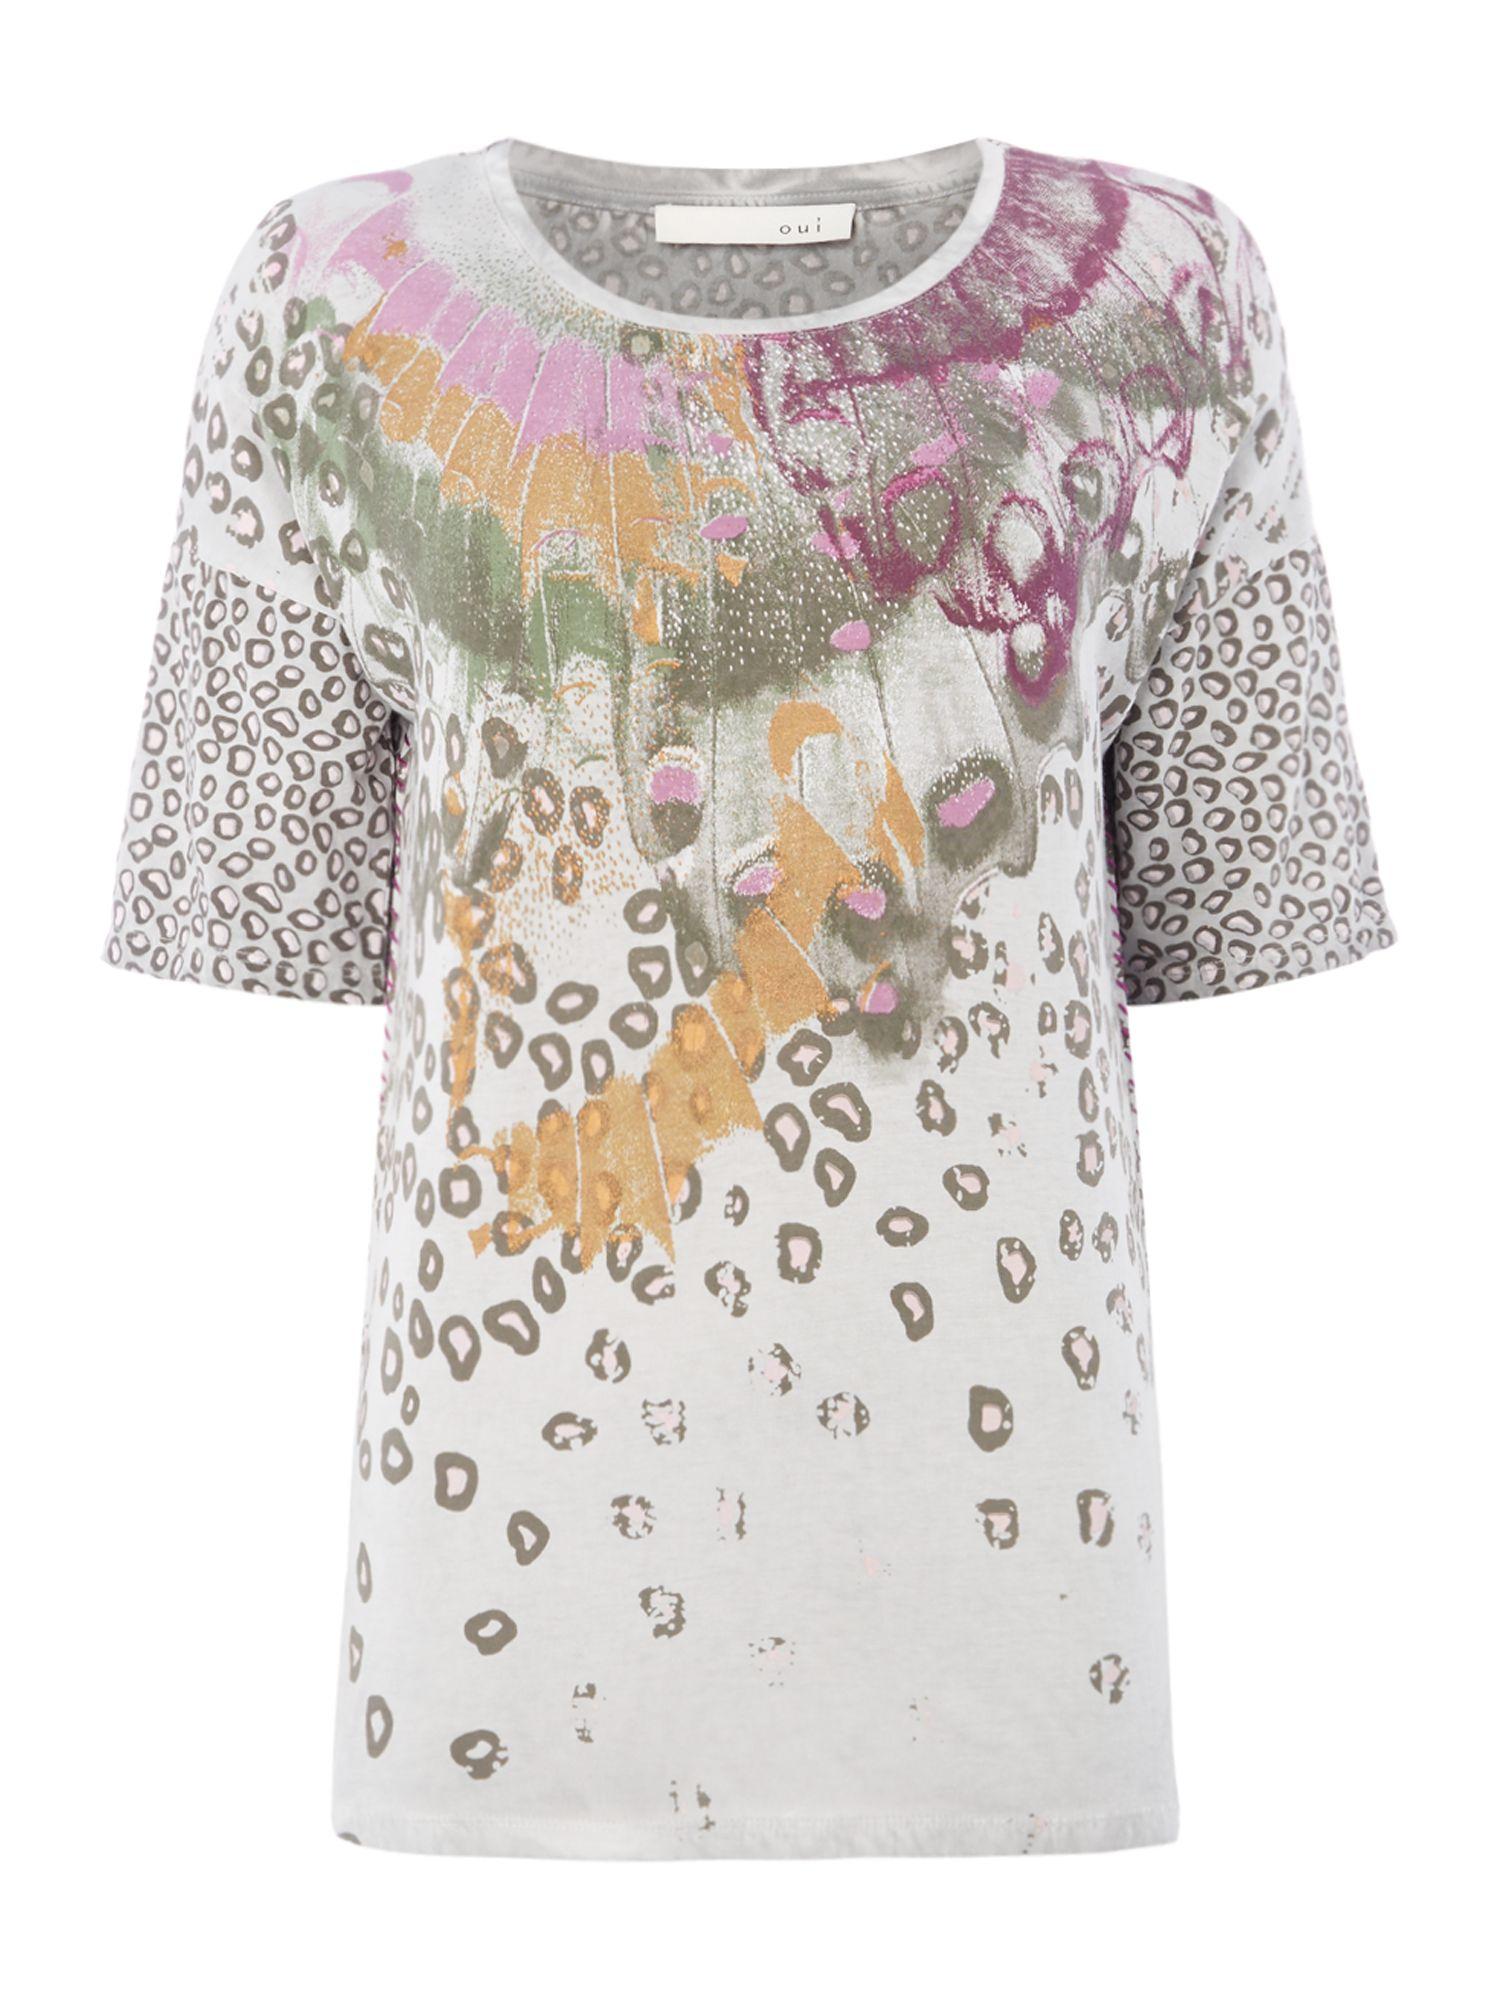 Oui Multi pattern leopard tee, Multi-Coloured